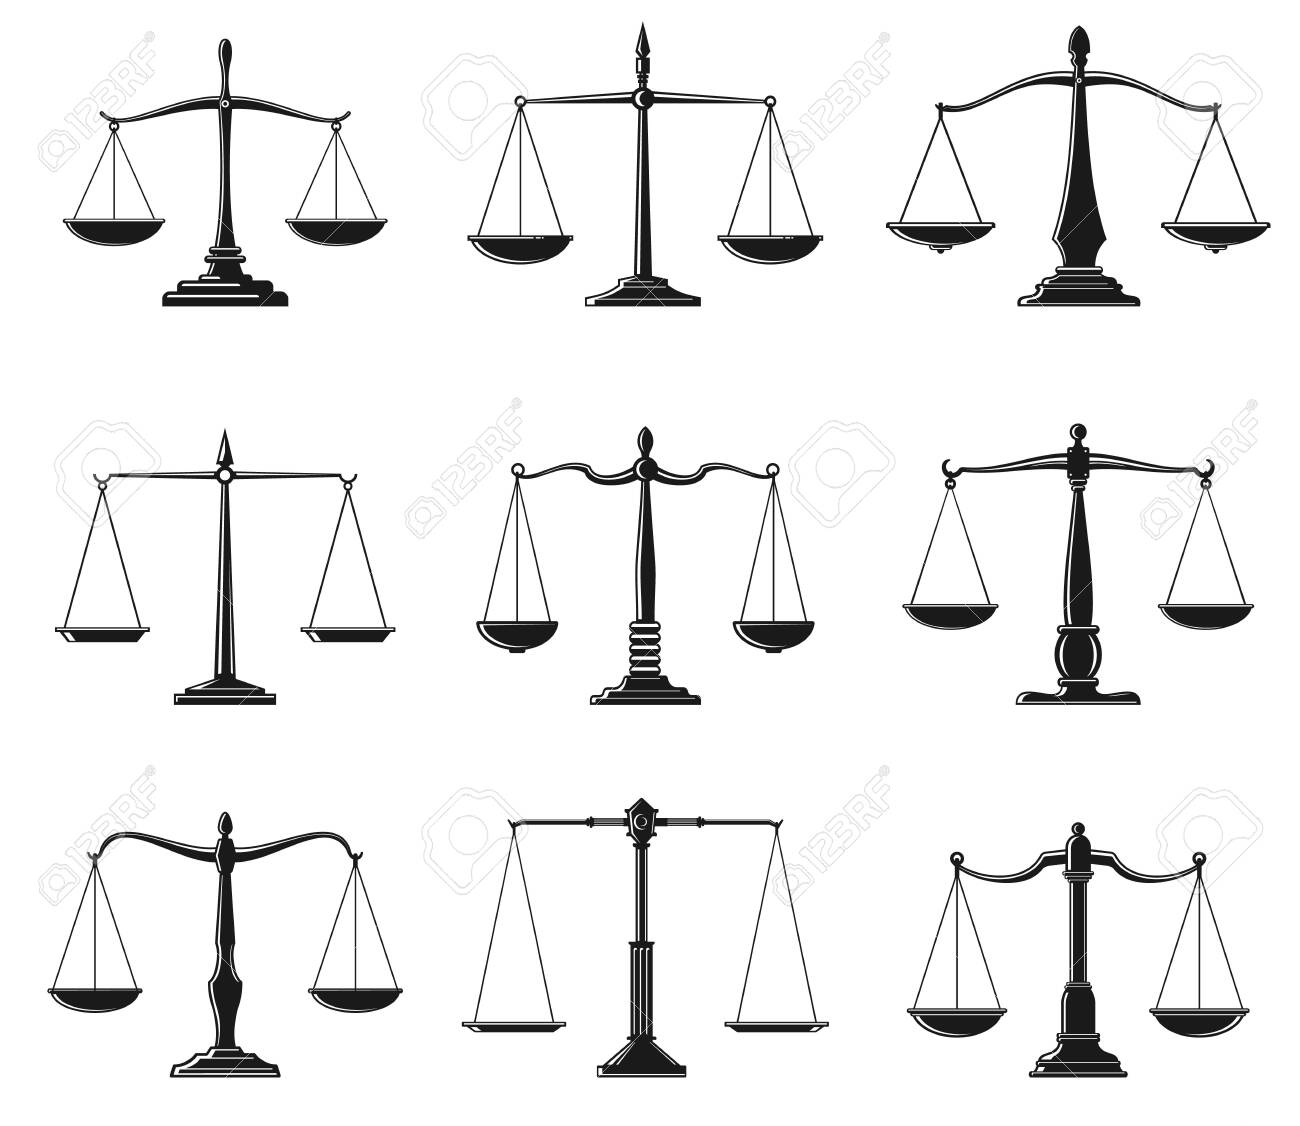 Scales of justice symbols of law balance vector design. Isolated icons of Lady Justice equal balance scales, weight measure instrument of law and order and legal protection themes - 141837621